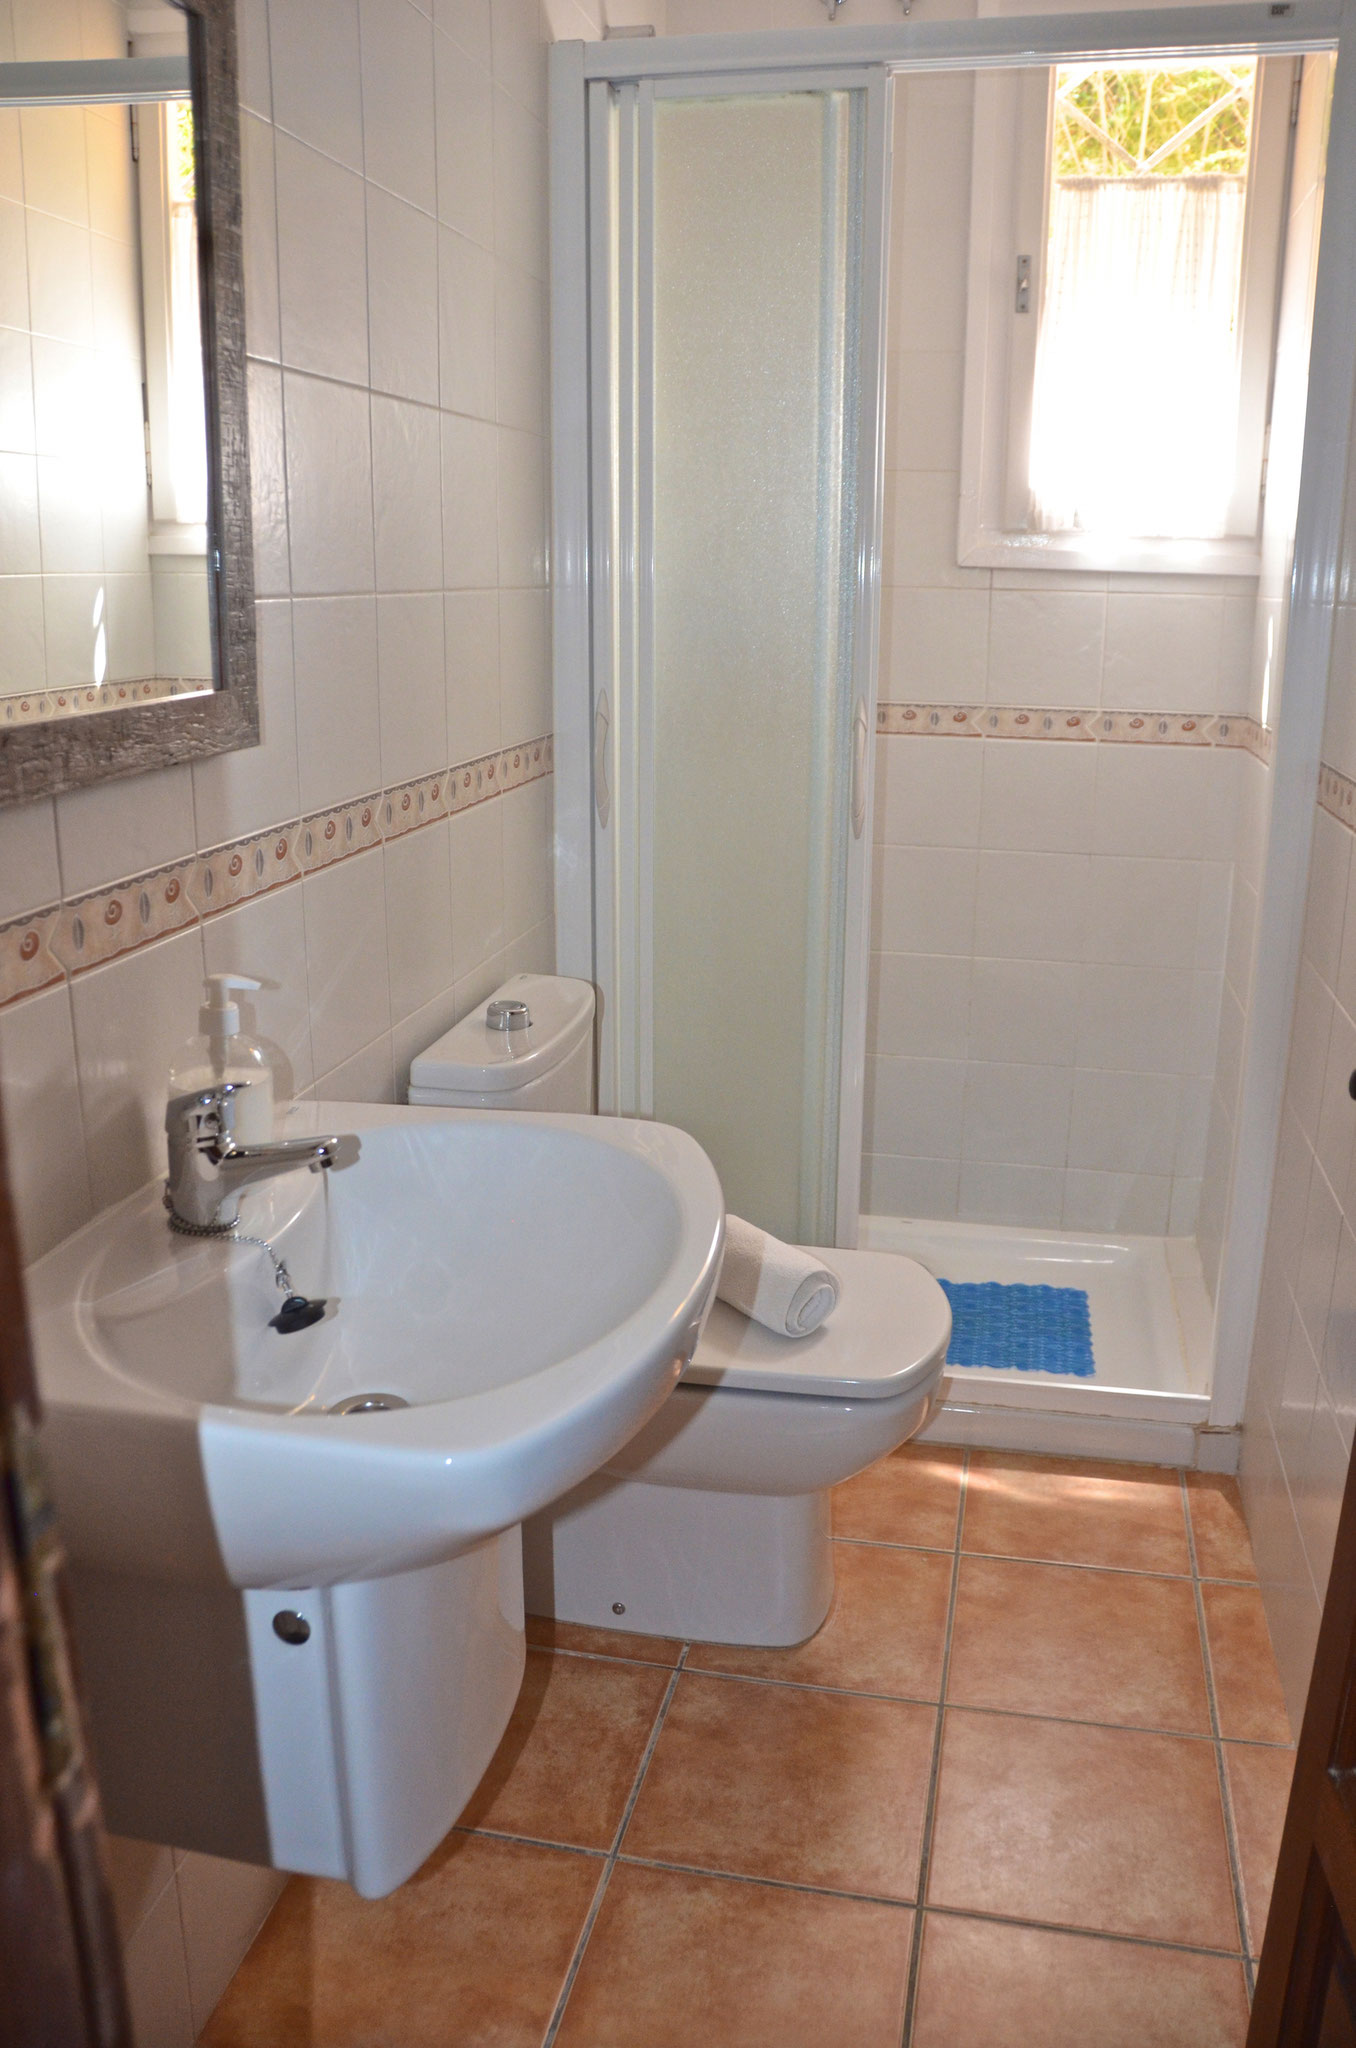 Shower room convenient to bedrooms 2 & 3